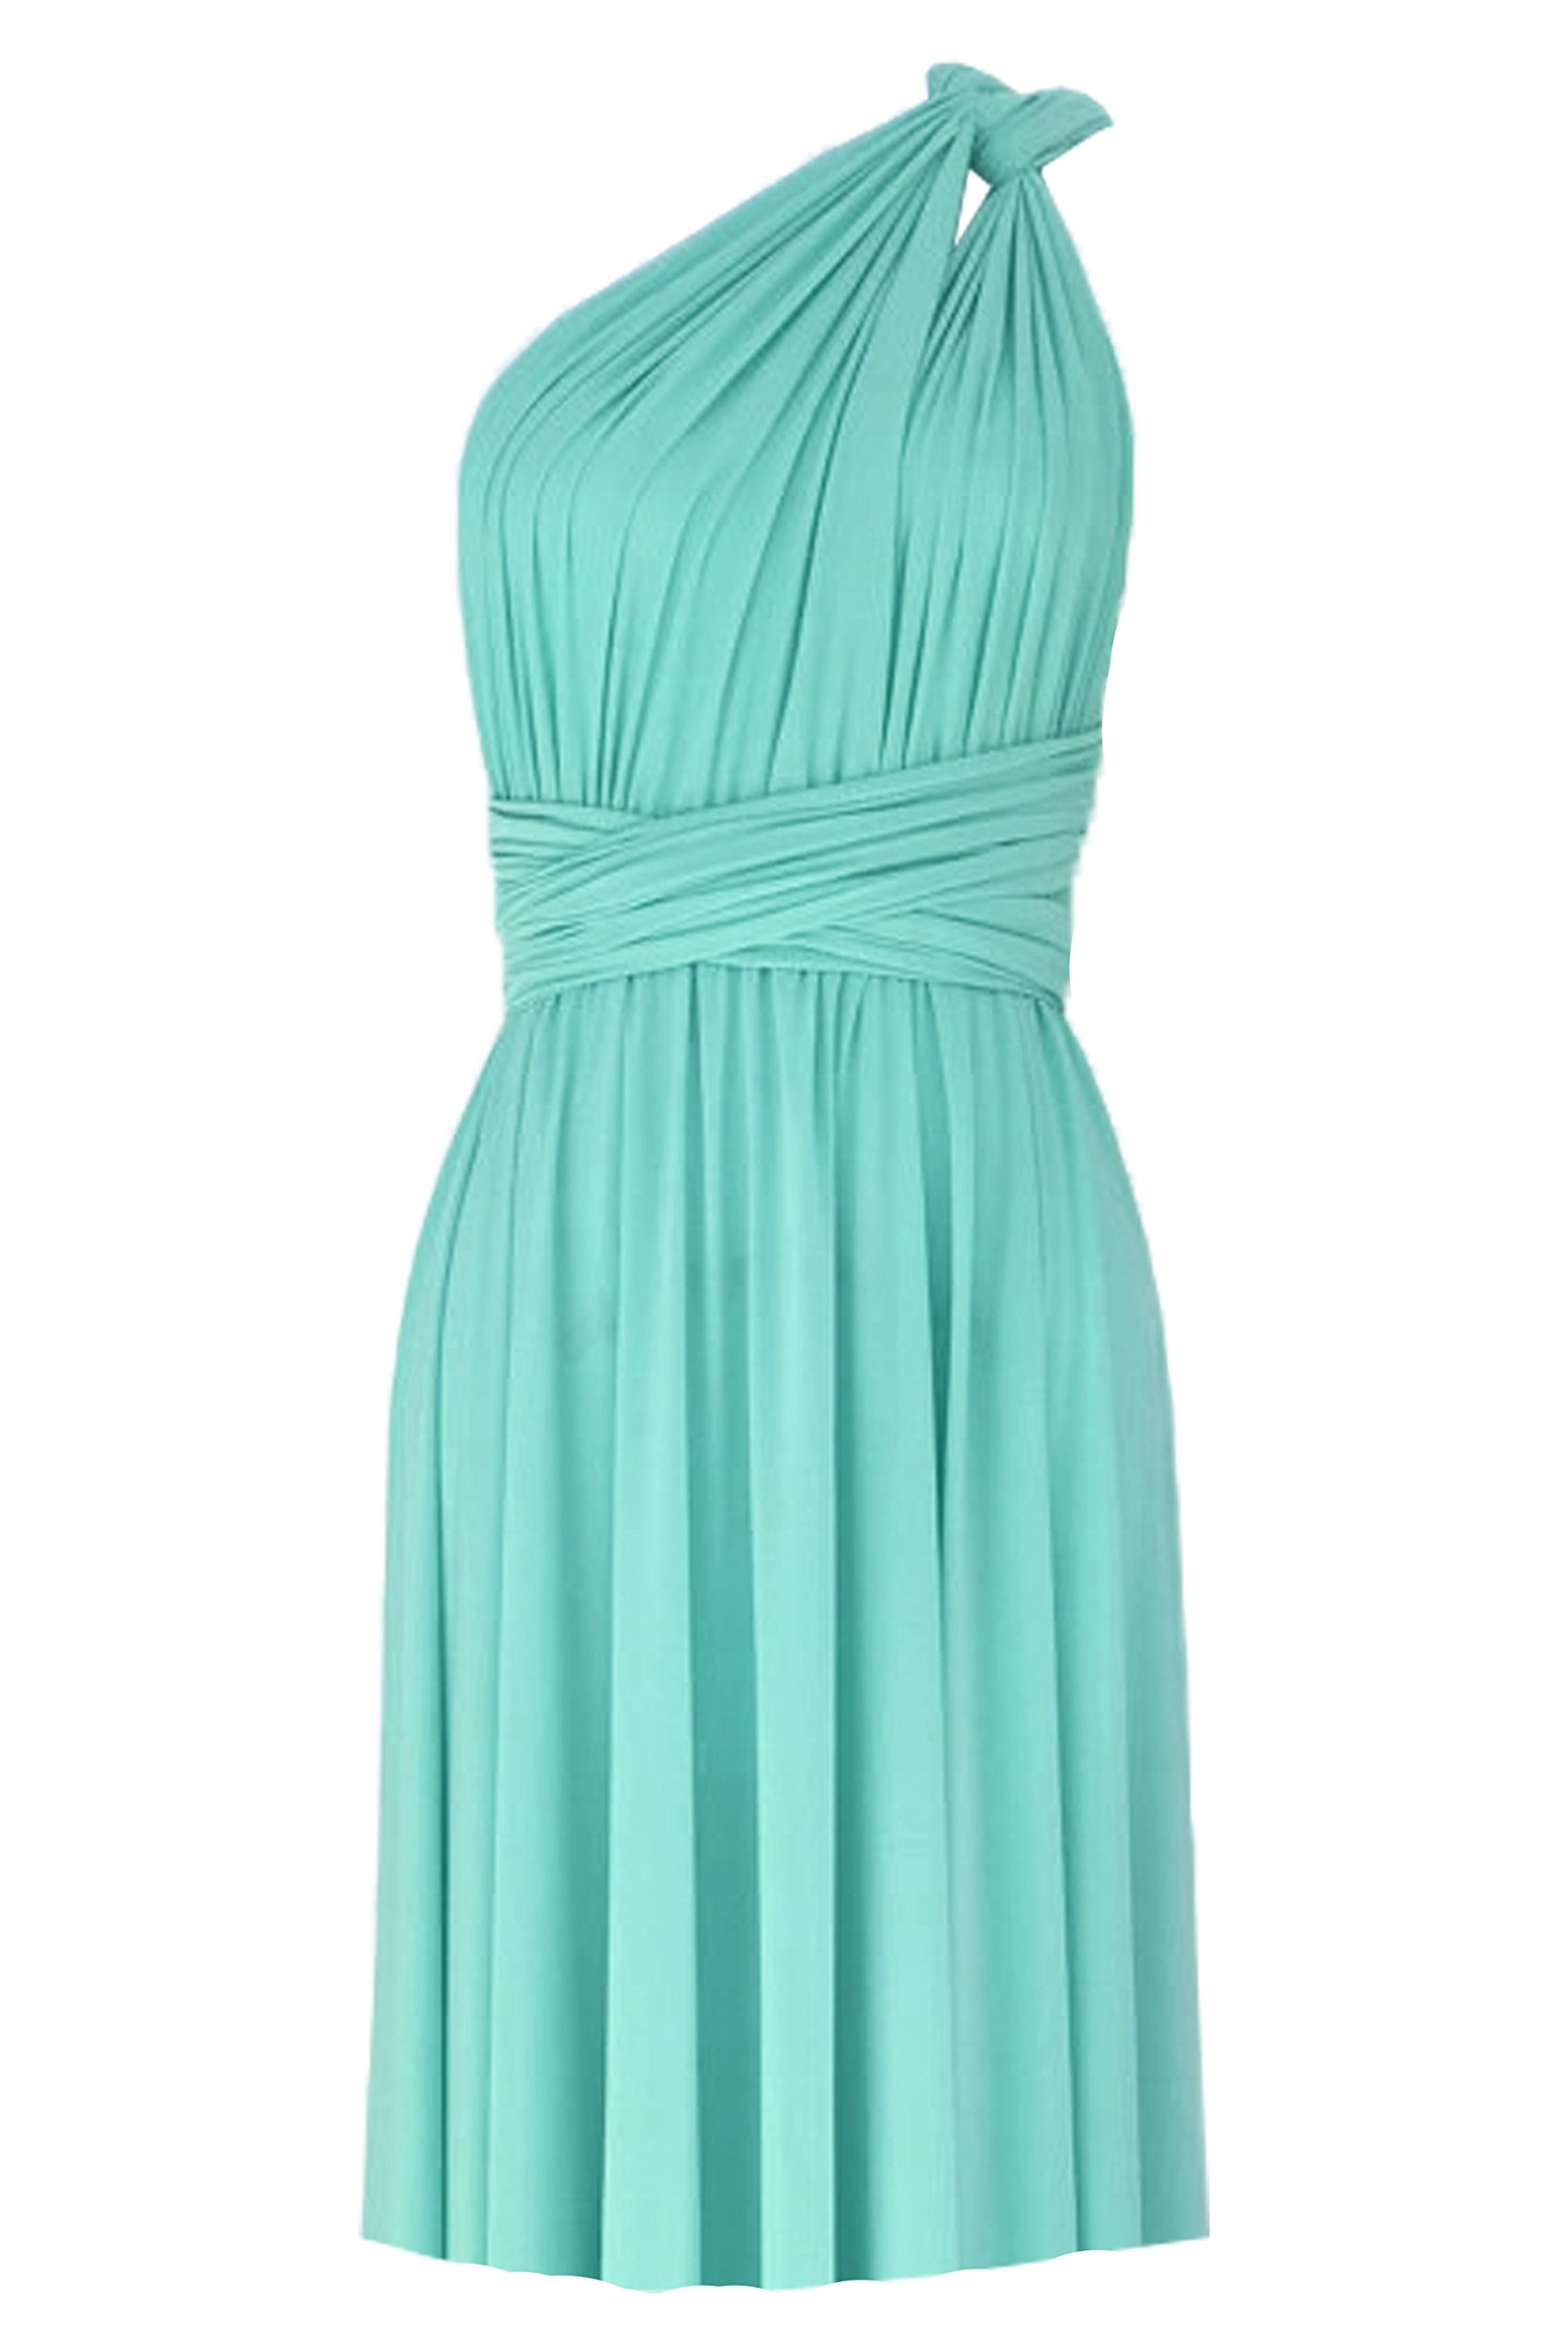 E K Infinity Short Dress Bridesmaid Convertible Gown Multi wrap Plus Size  Prom Skirt Knee Length Transformer wear-Tiffany Blue-l-XL